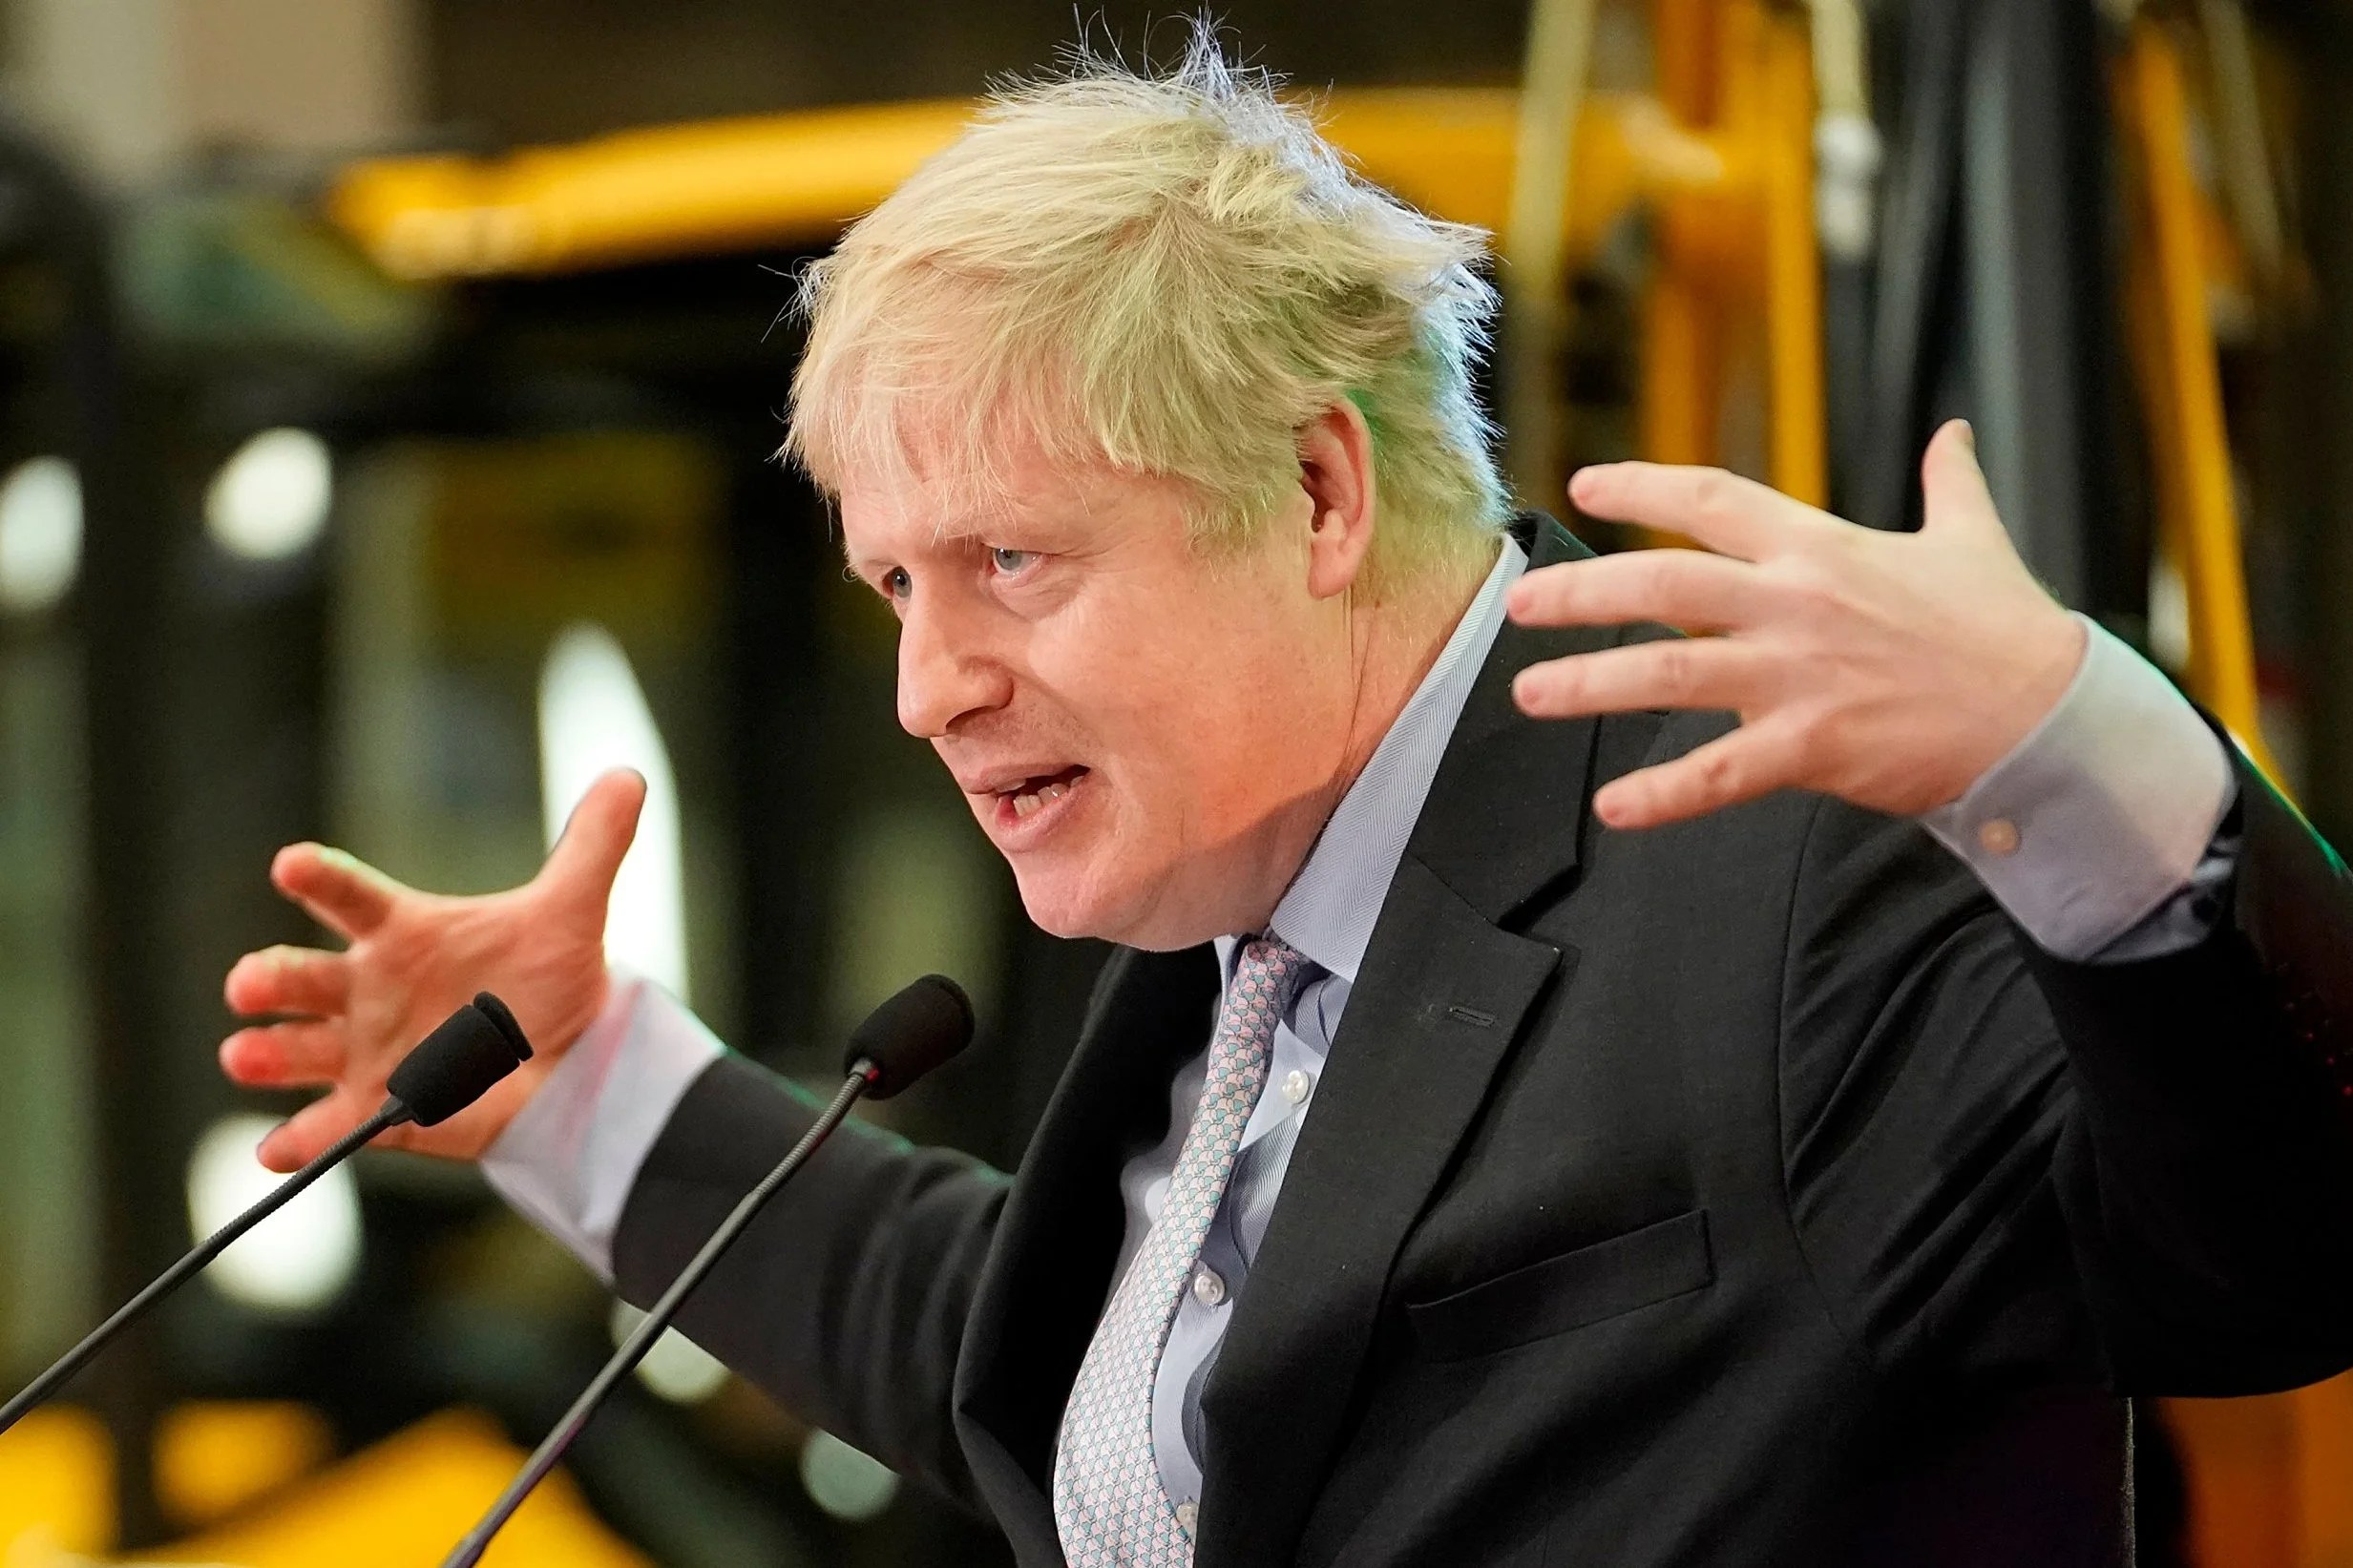 borisjohnson1801 Boris Johnson declares cancelling Brexit would be 'utterly pathetic' as he writes off Theresa May's failed deal